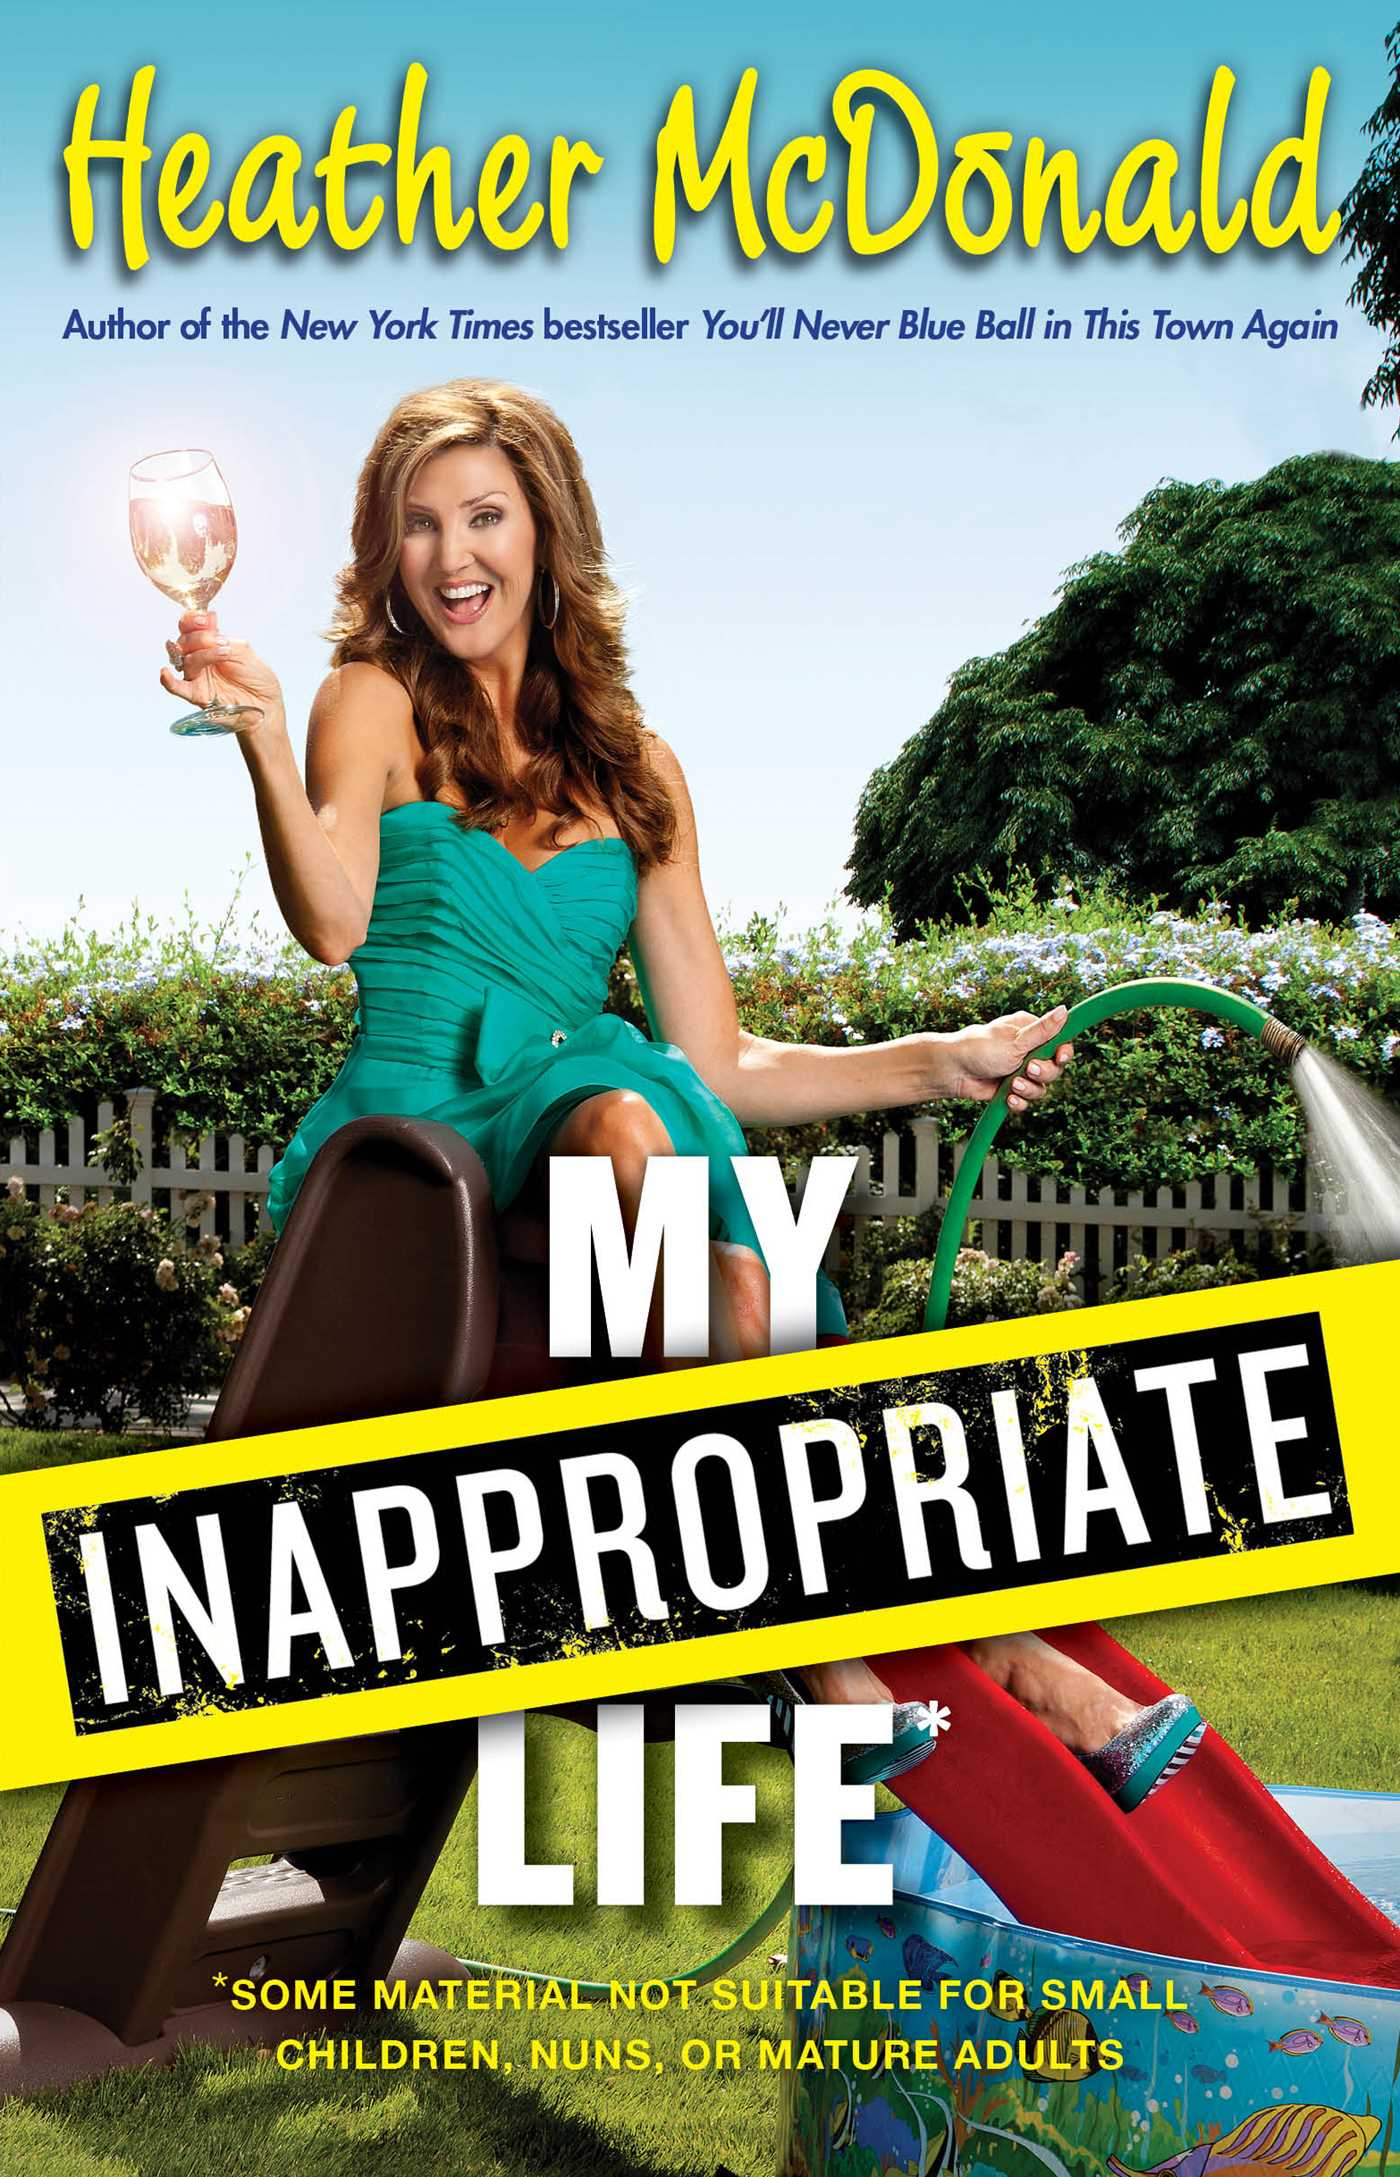 My-inappropriate-life-9781451672244_hr